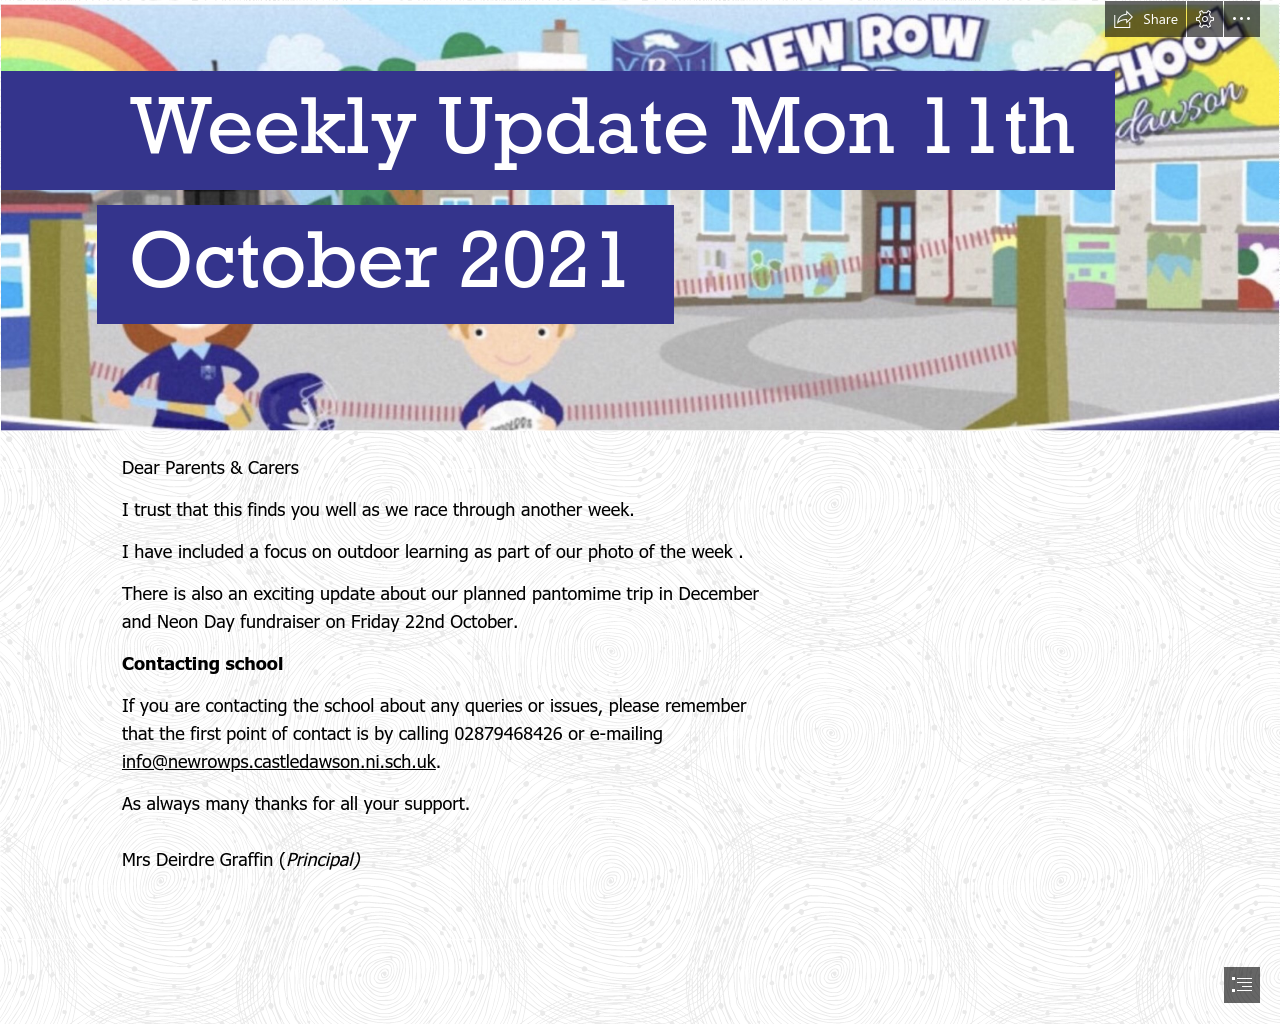 Weekly Update 11th October 2021